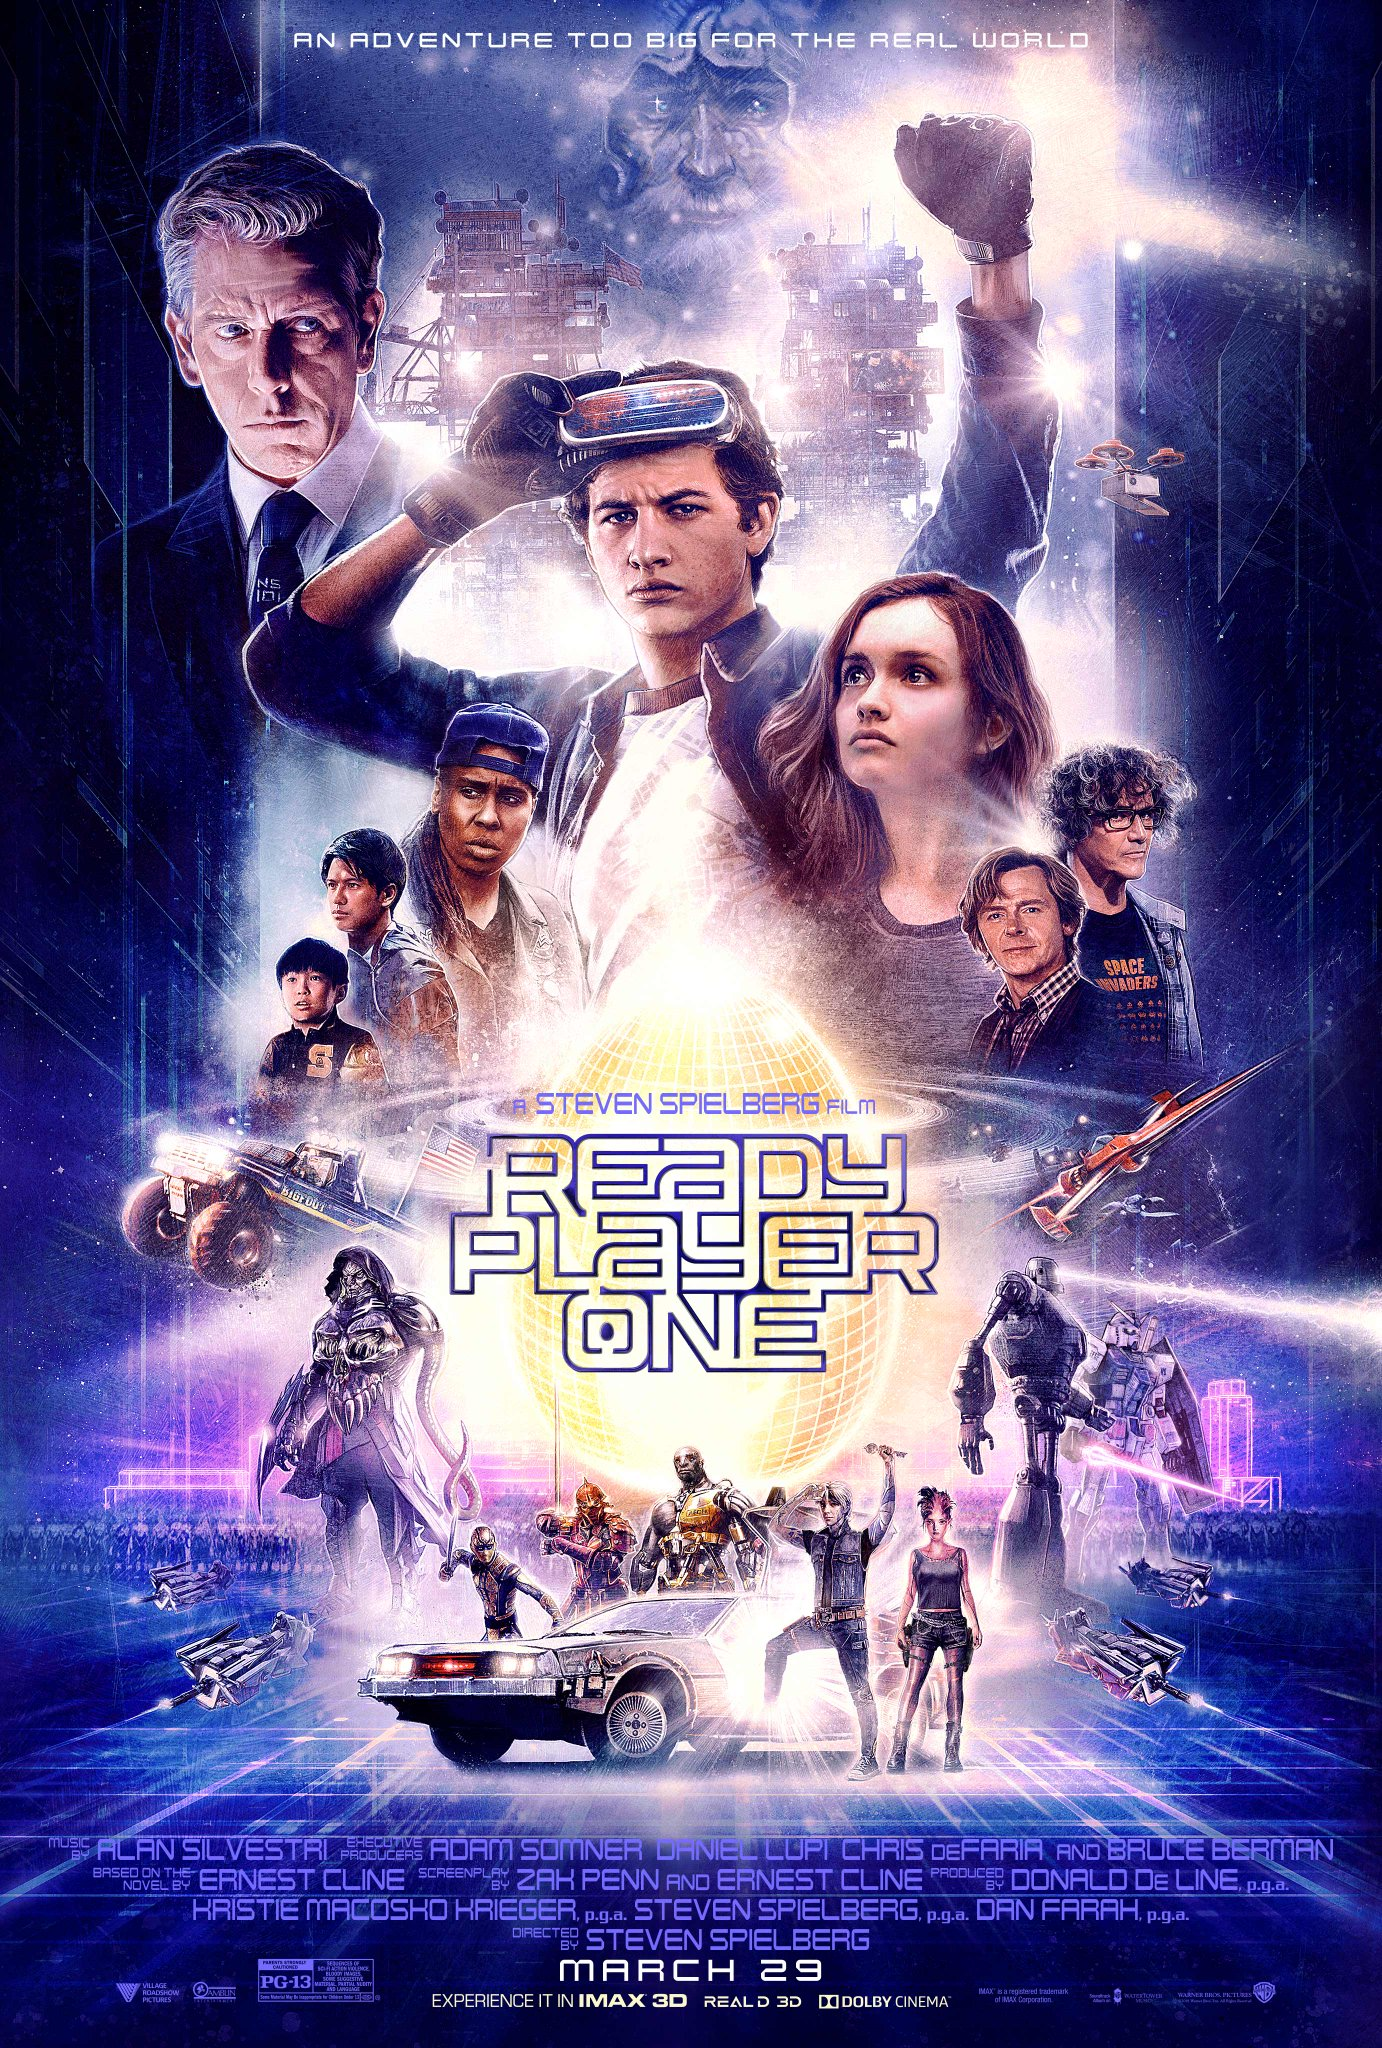 Ready Player One (film)